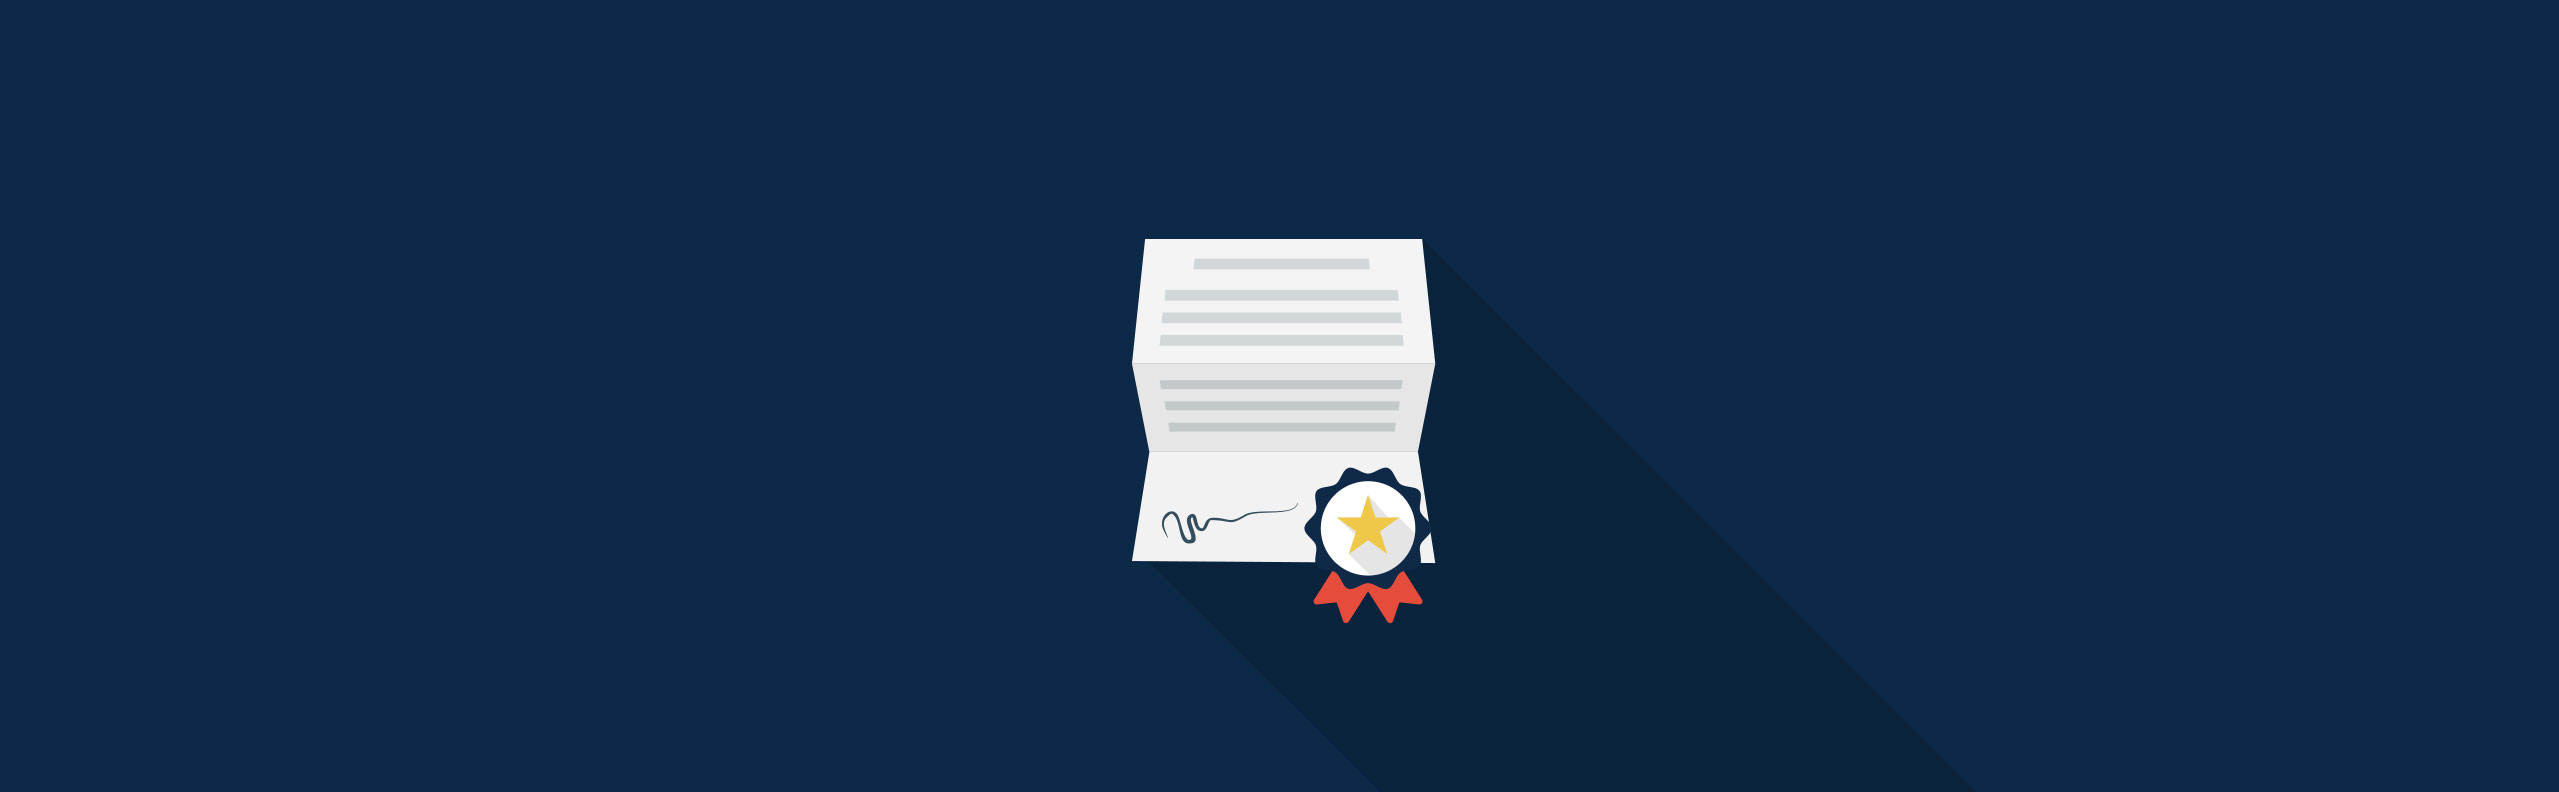 Web Accessibility Certifications for A11Y Practitioners